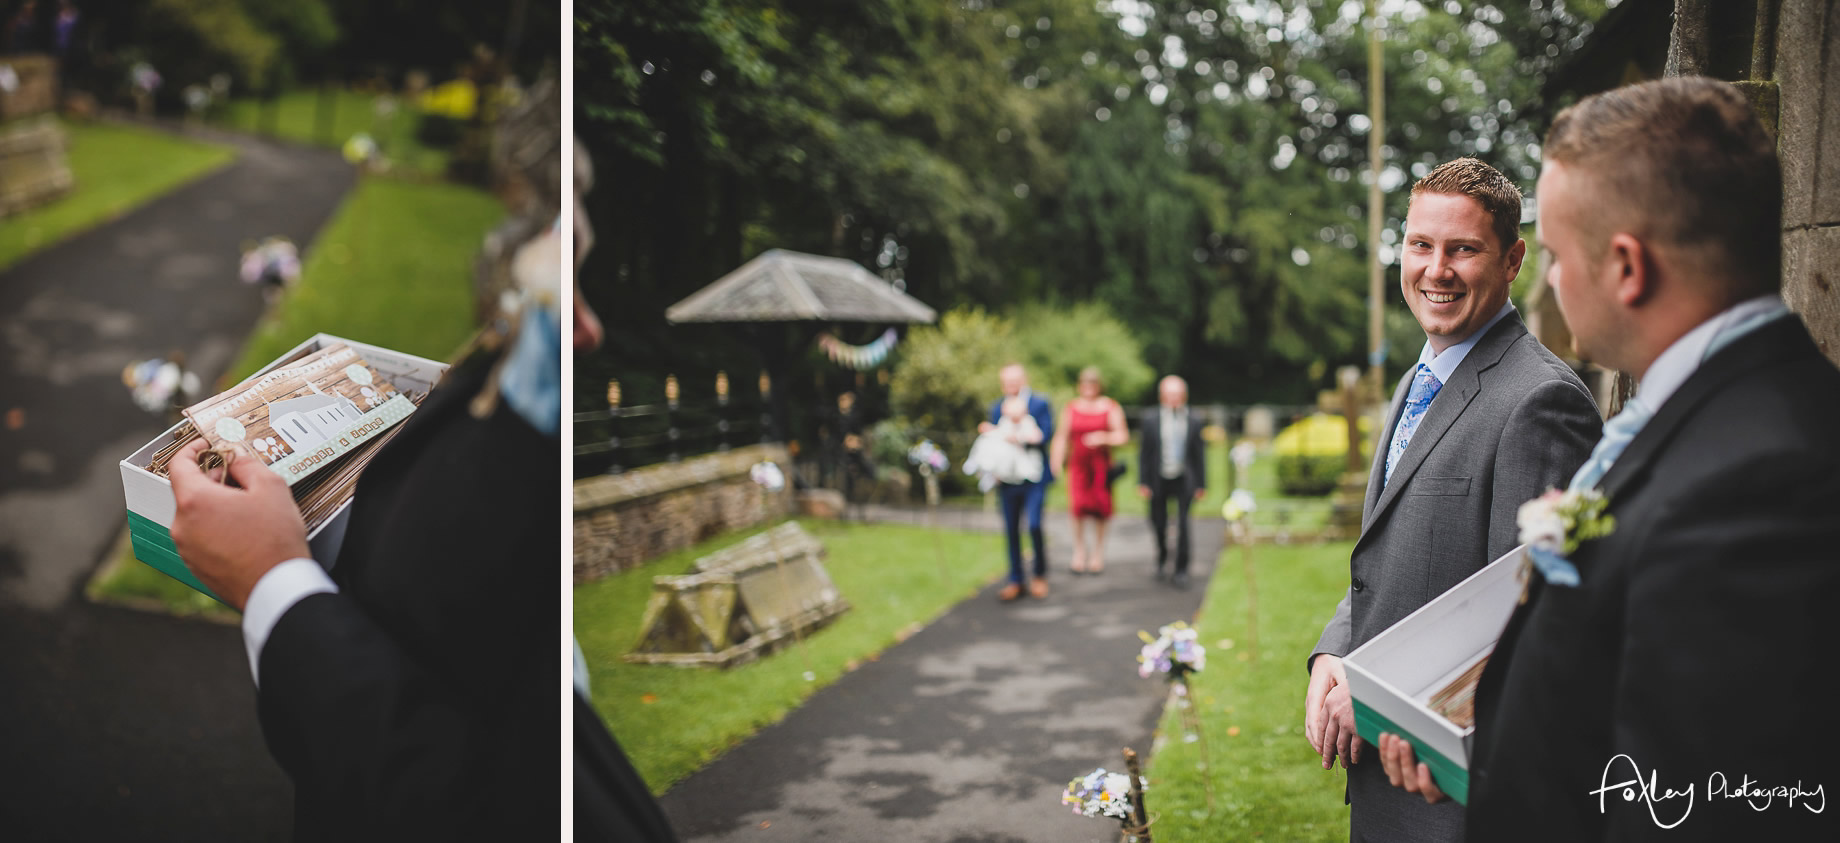 Claire and James' Wedding at Mitton Hall 072